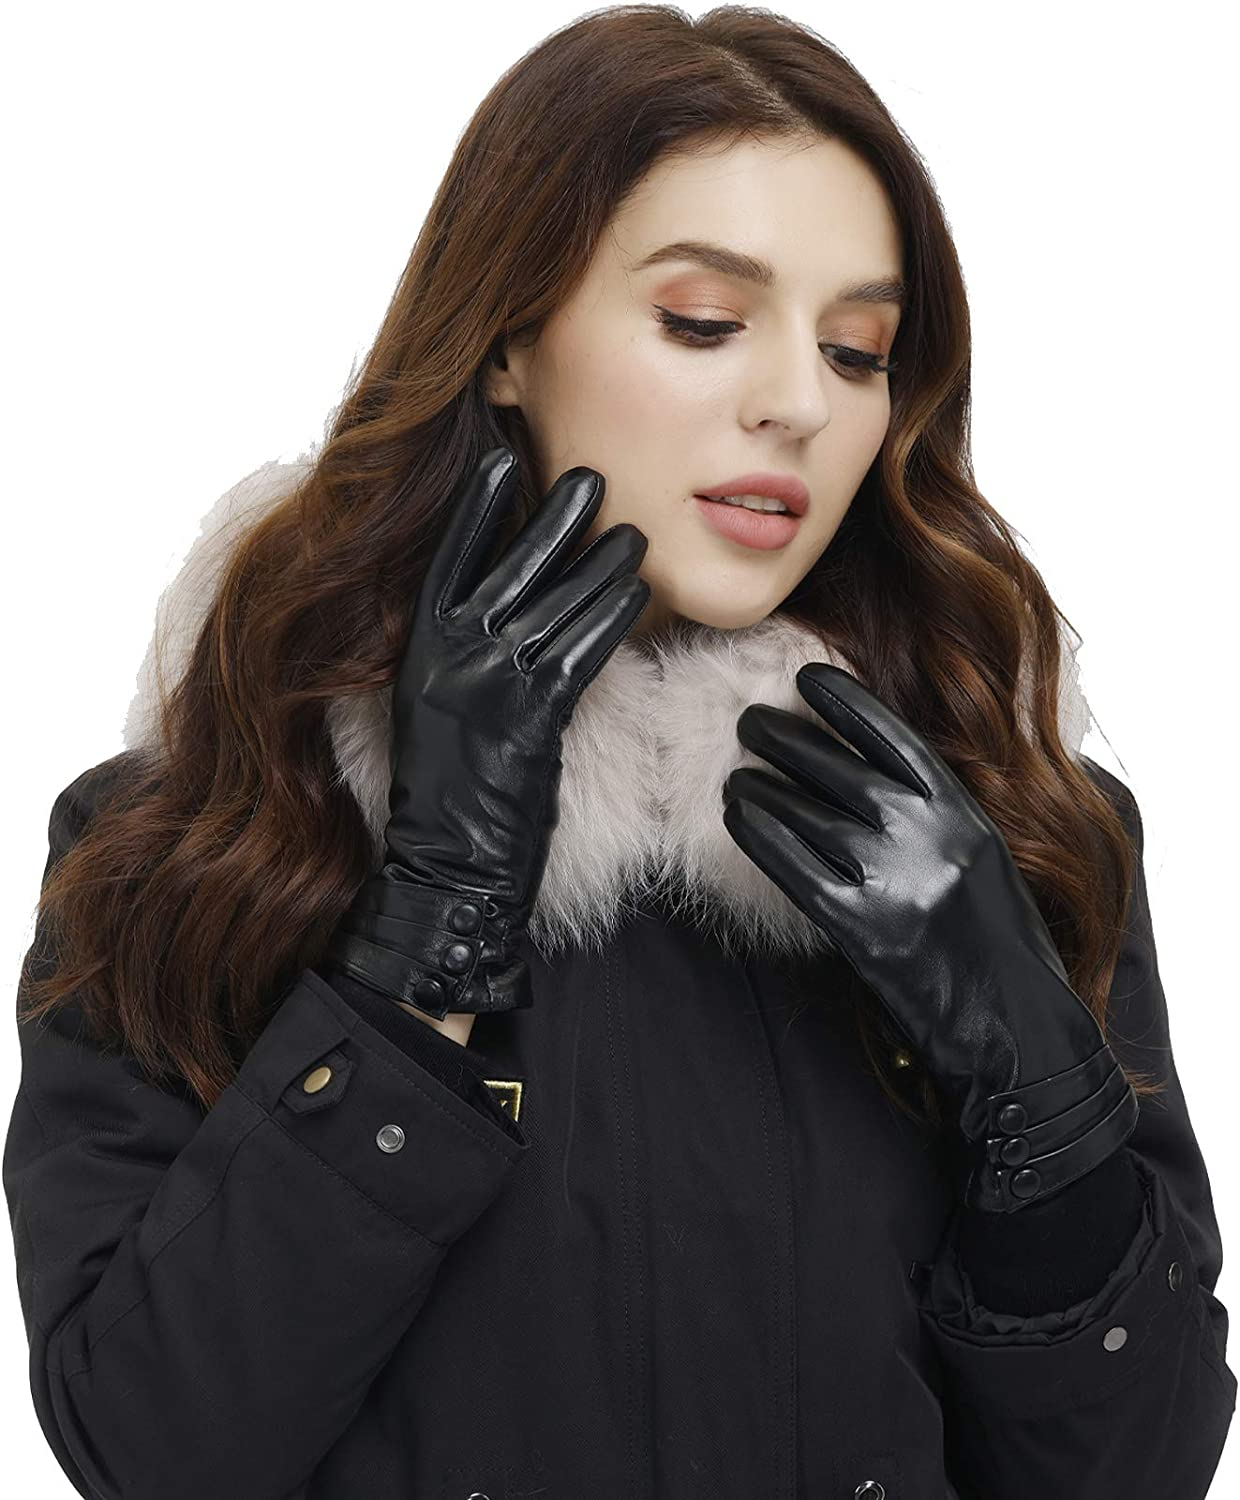 Isilila Soft Sheepskin Leather Gloves for Women, Premium Winter Warm Touchscreen Thermal Gloves for Texting/Driving/Typing